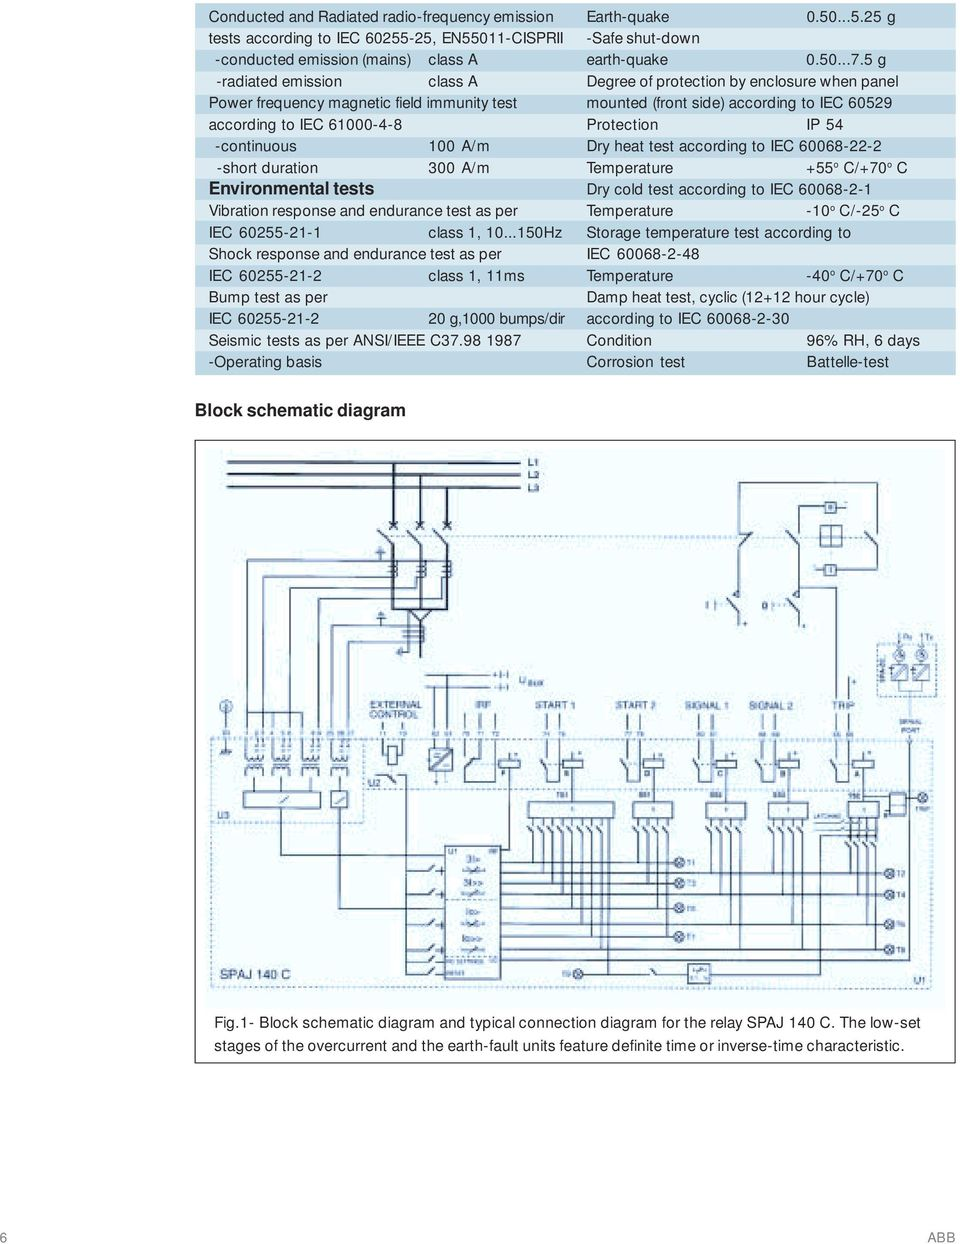 Peachy Combined Overcurrent Earth Fault Relay Type Spaj 140 C Pdf Wiring Database Lotapmagn4X4Andersnl